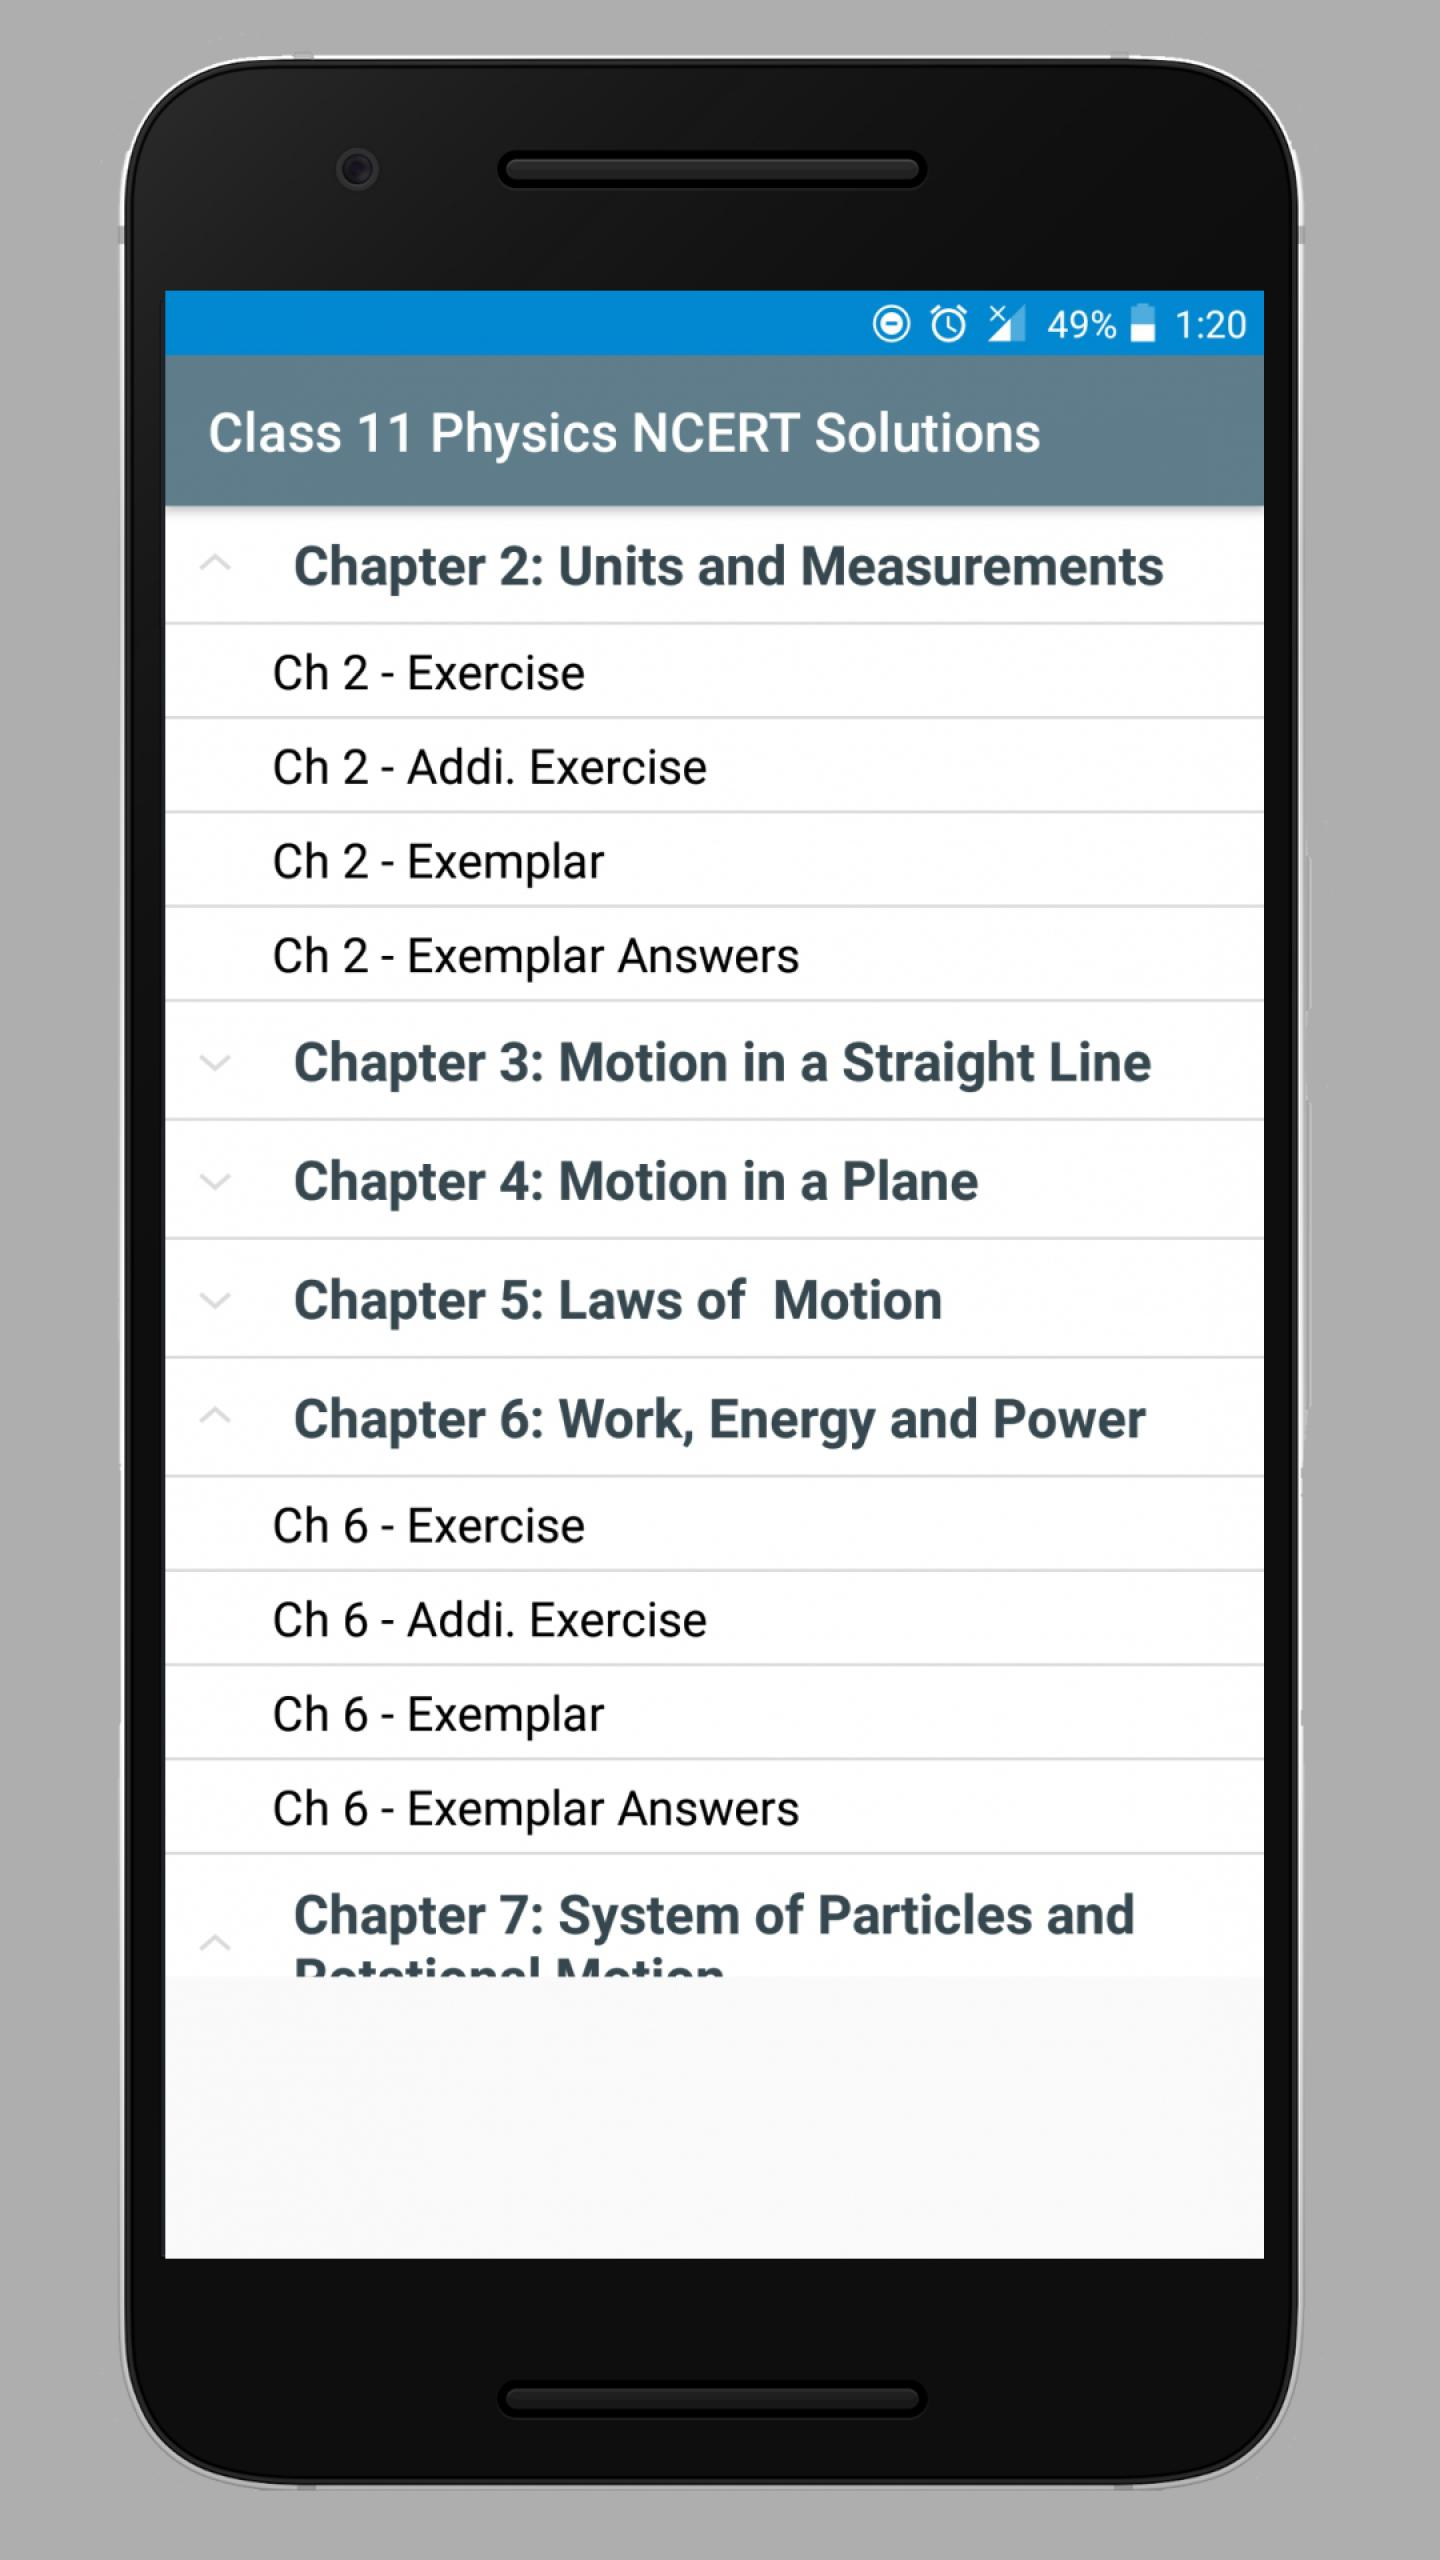 Class 11 Physics NCERT Solutions for Android - APK Download